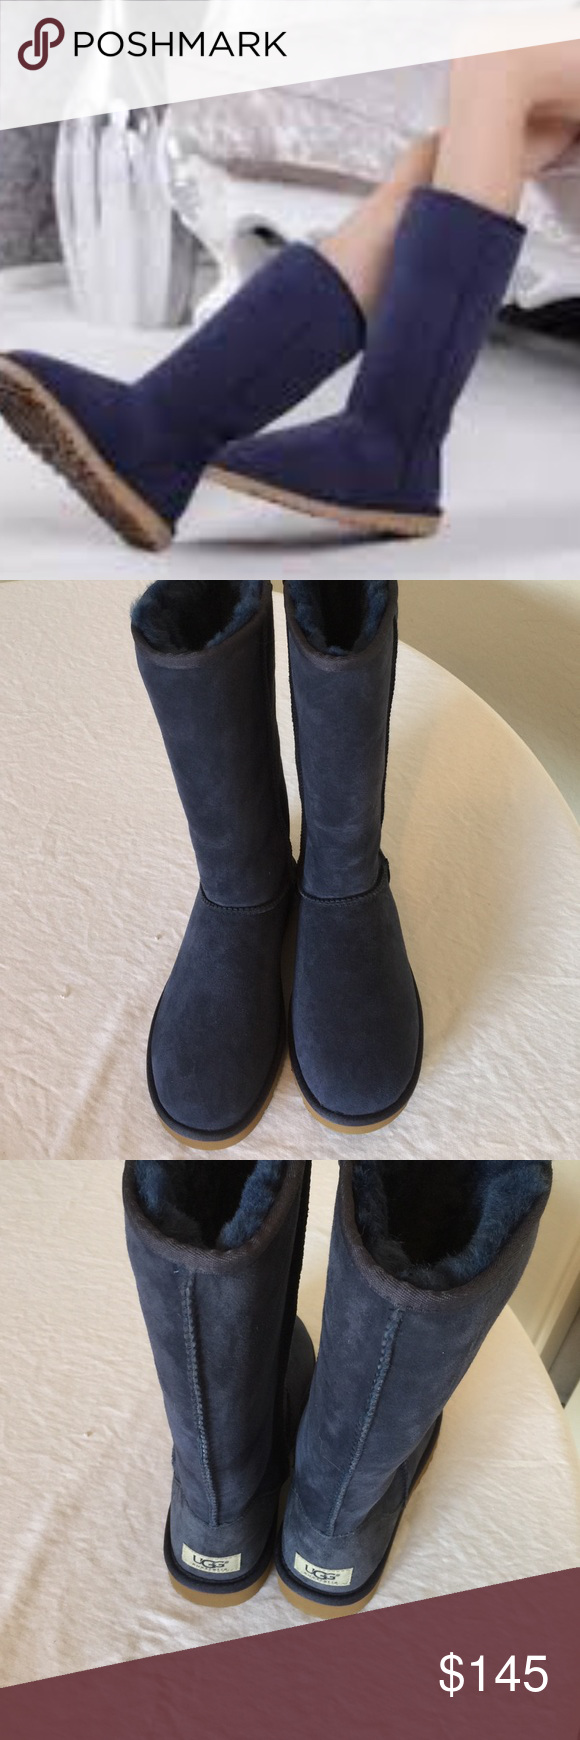 793c9cacd77 italy ugg classic tall size 8 jeans bcaba a18ae